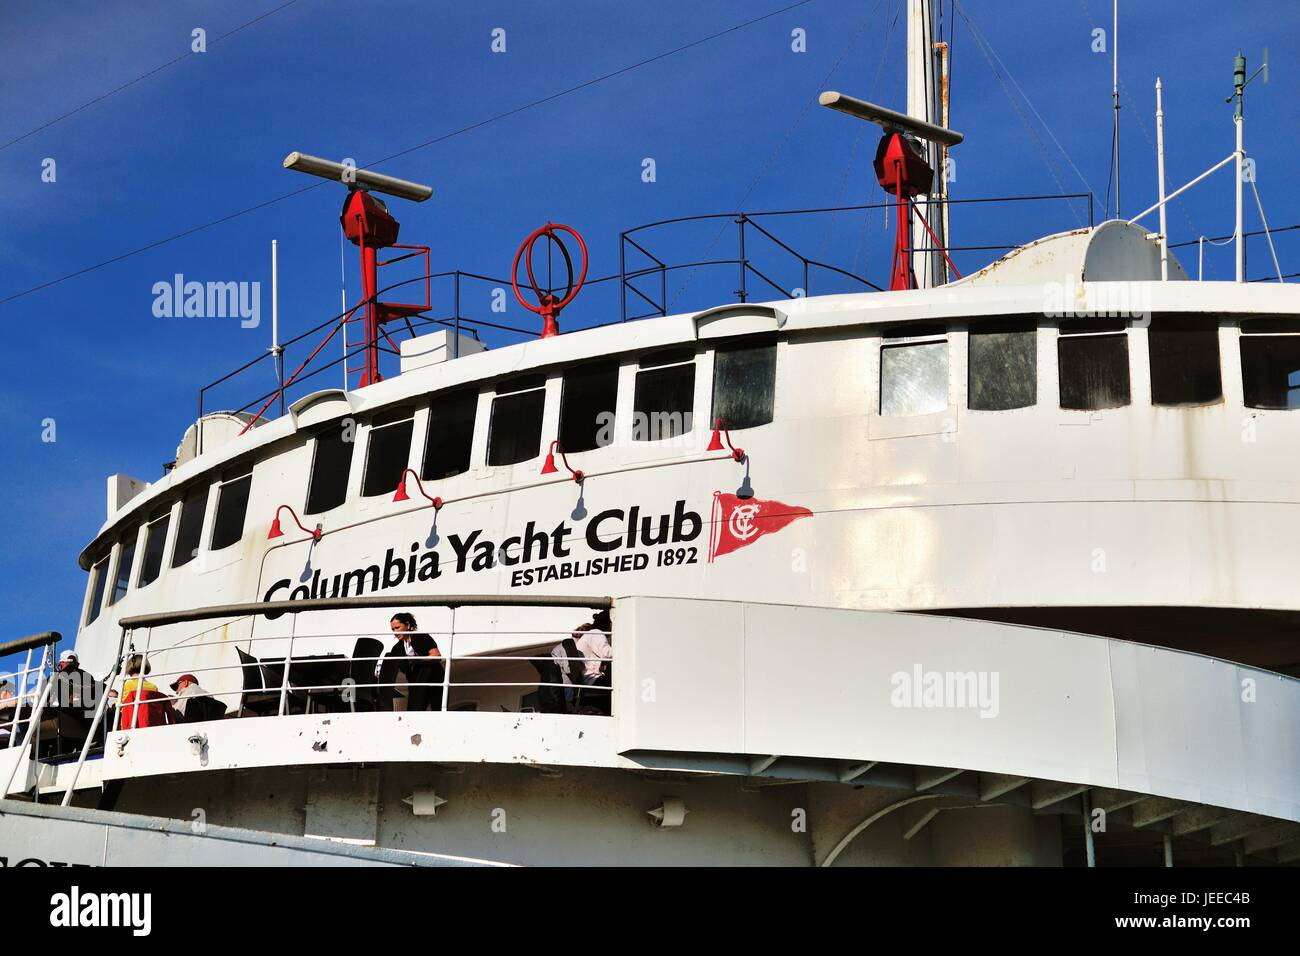 A yacht provides a ftting home for the Columbia Yacht Club in Chicago's DuSable Harbor. Chicago, Illinois, USA. Stock Photo